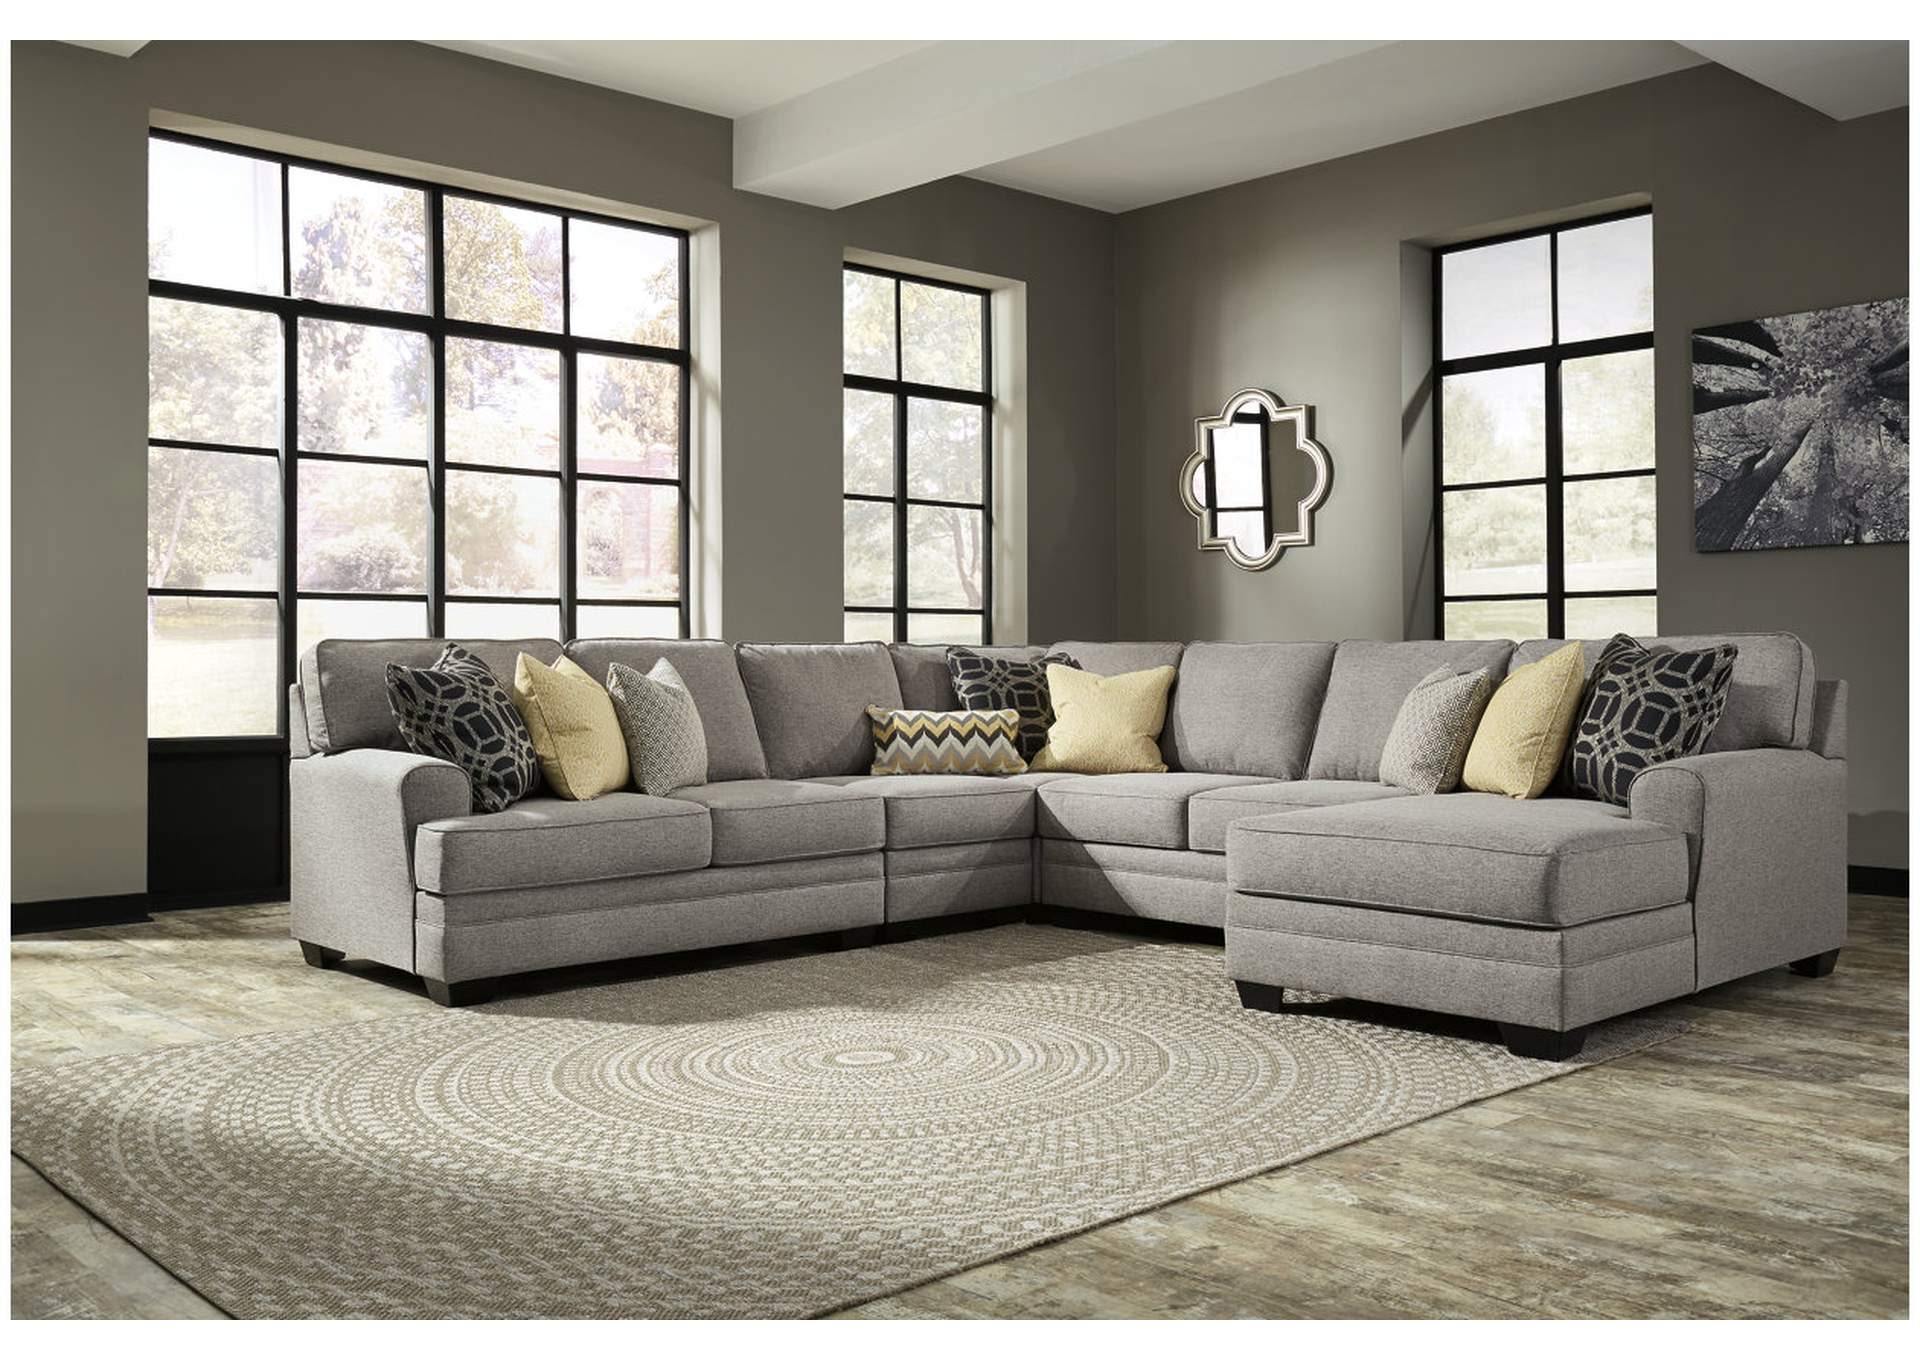 Cresson Pewter Left Facing Loveseat Corner Chaise Sectional,Benchcraft